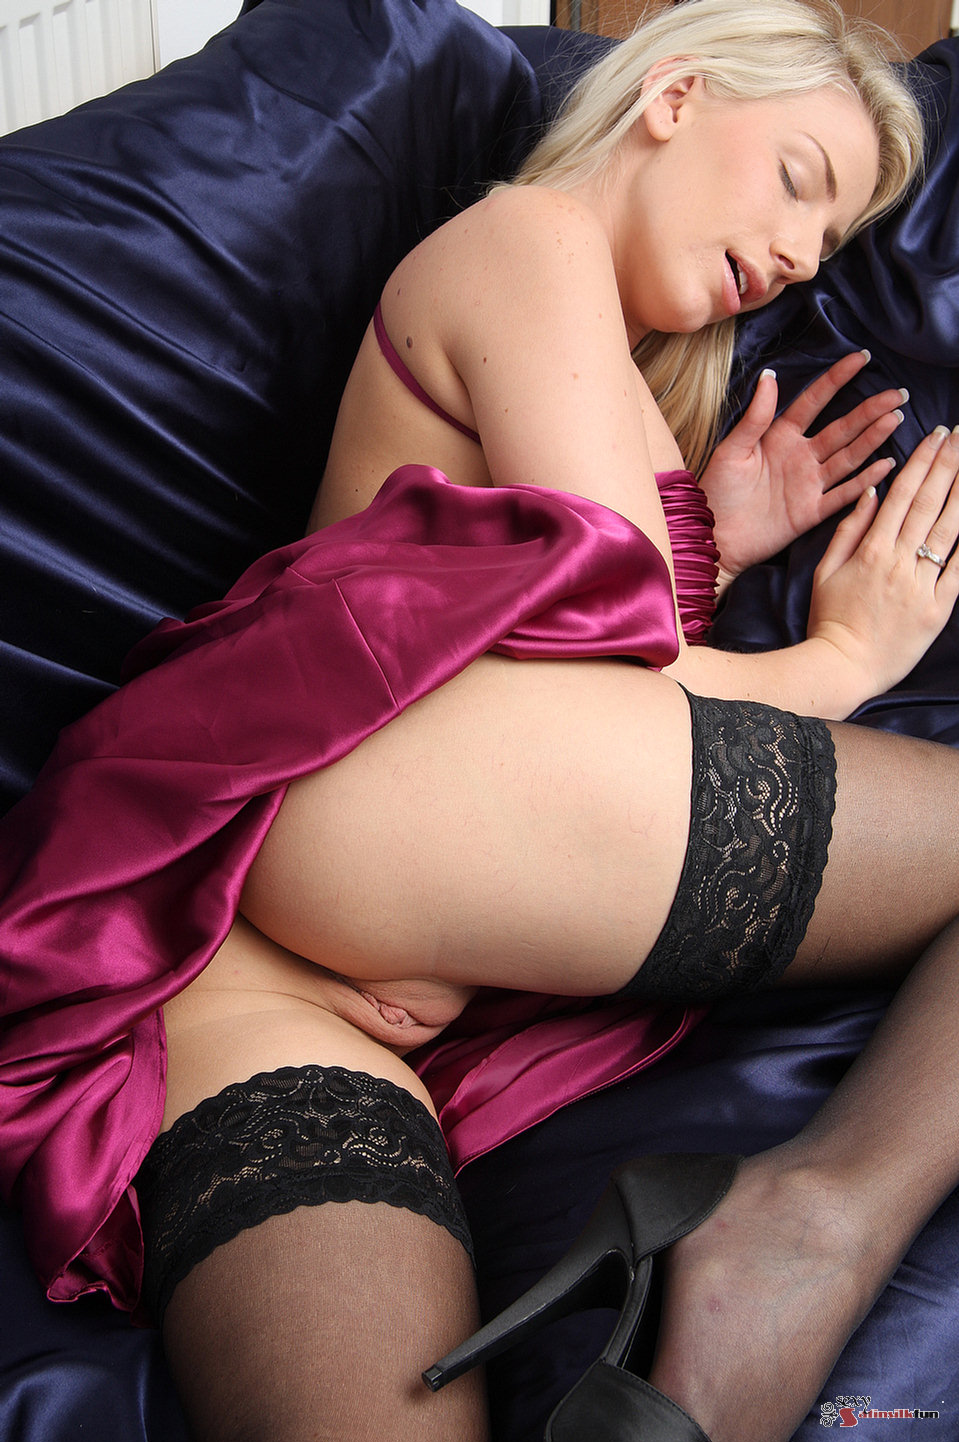 Blonde Danielle in black stockings and silk lingerie